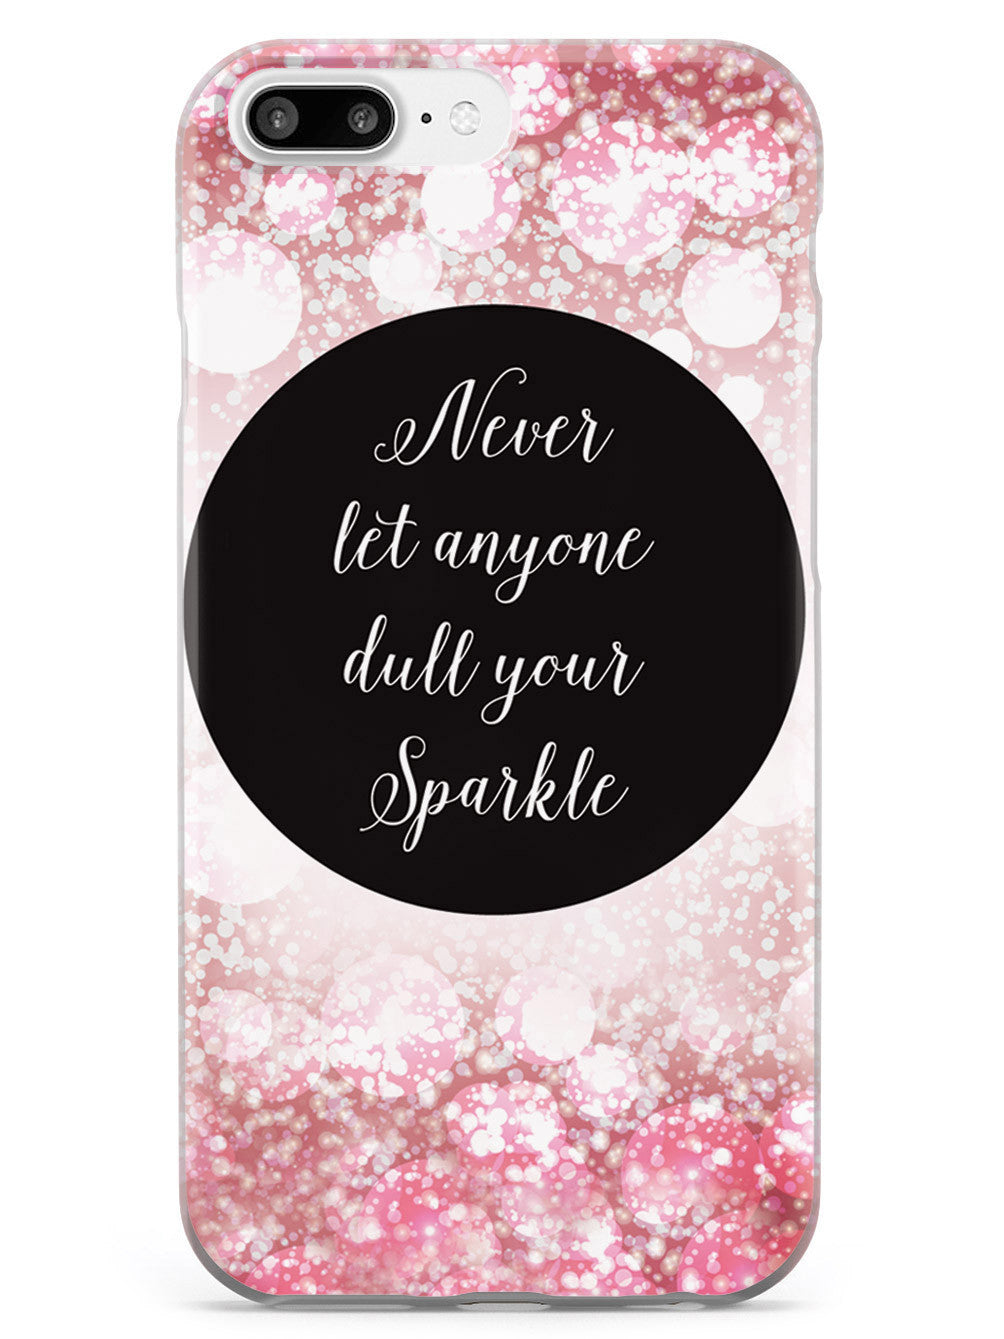 Dull Your Sparkle Case